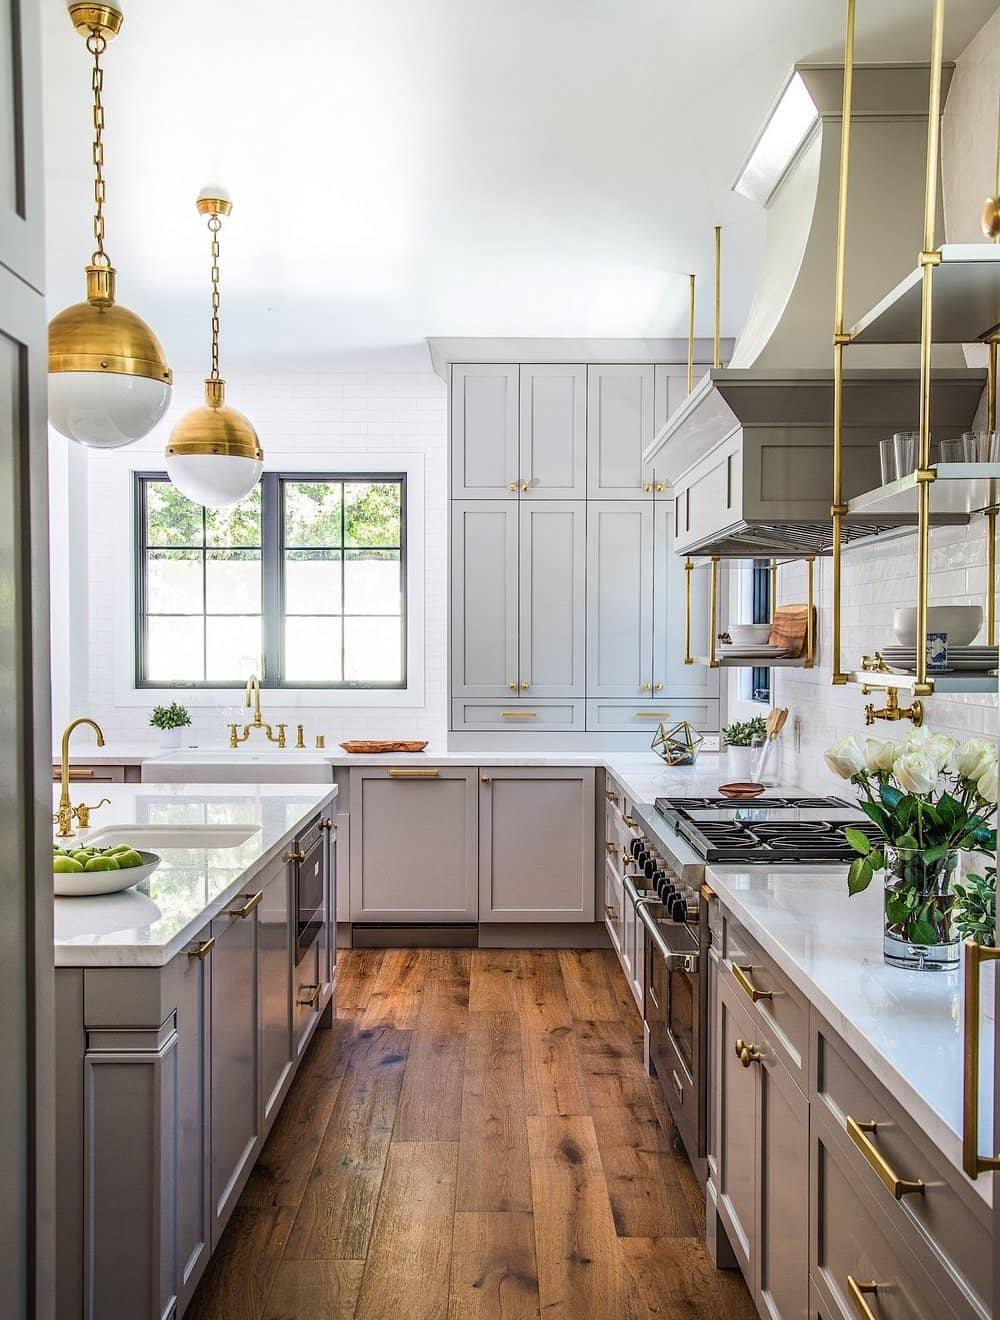 17 Fixer Upper Style Modern Farmhouse Kitchens   Glam grey kitchen with gold fixtures, gorgeous pendants and open shelving   A Visual Merriment